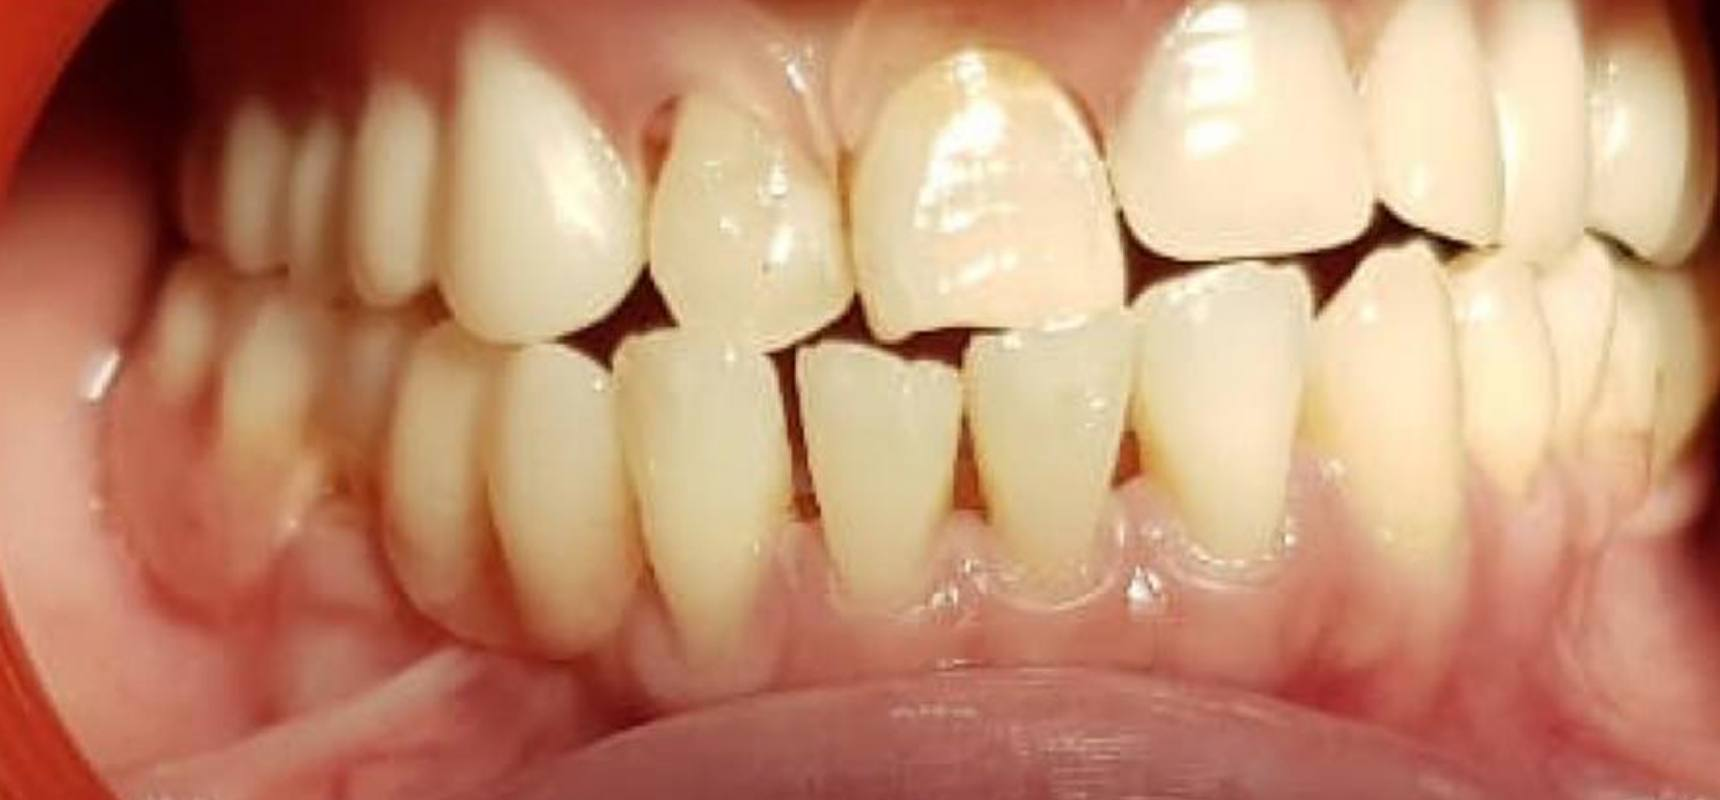 After-A moving kit to replace lost teeth